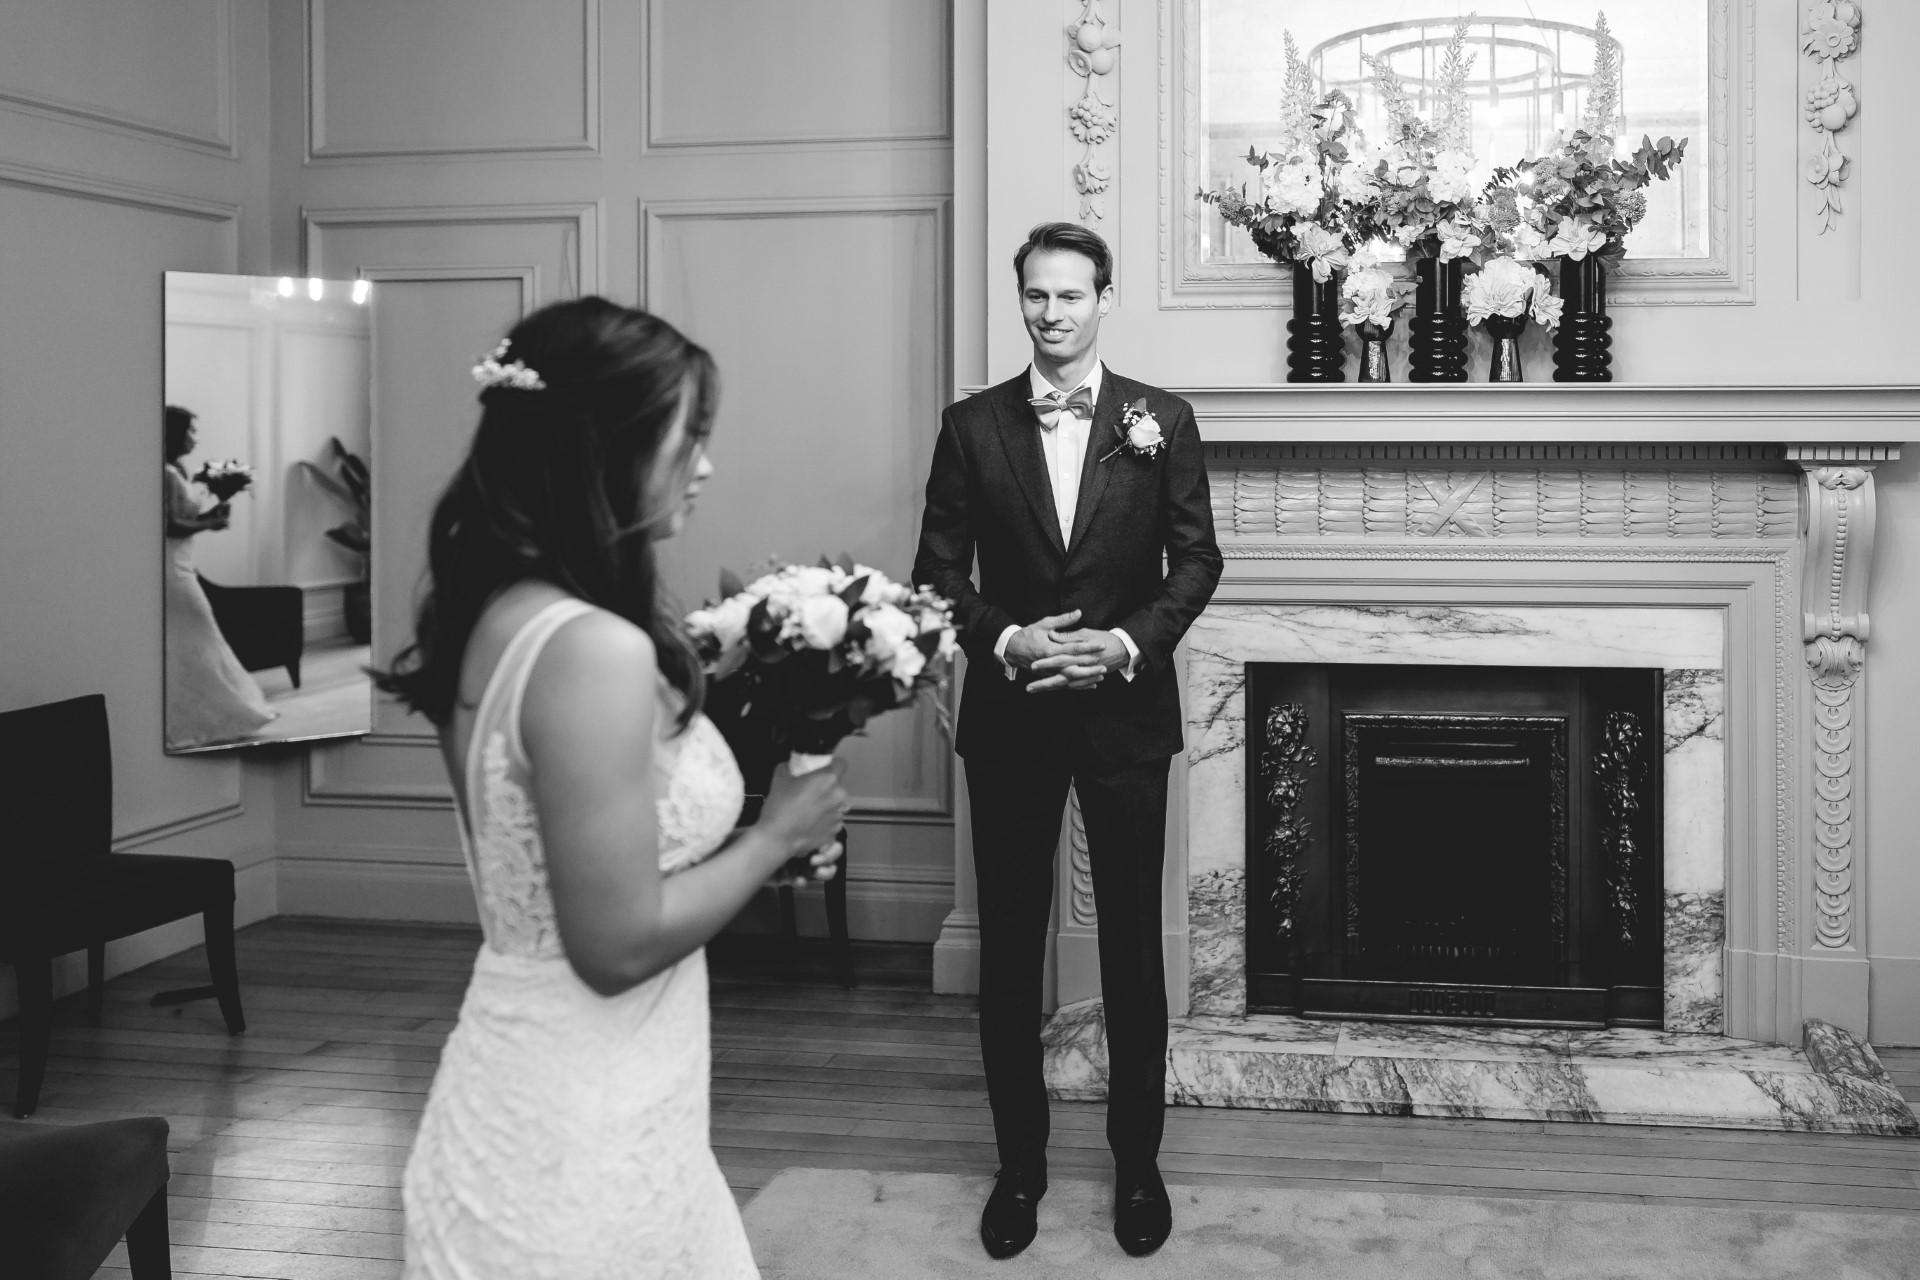 Old Marylebone Town Hall Wedding Photographer | The groom is very happy as his bride walks in